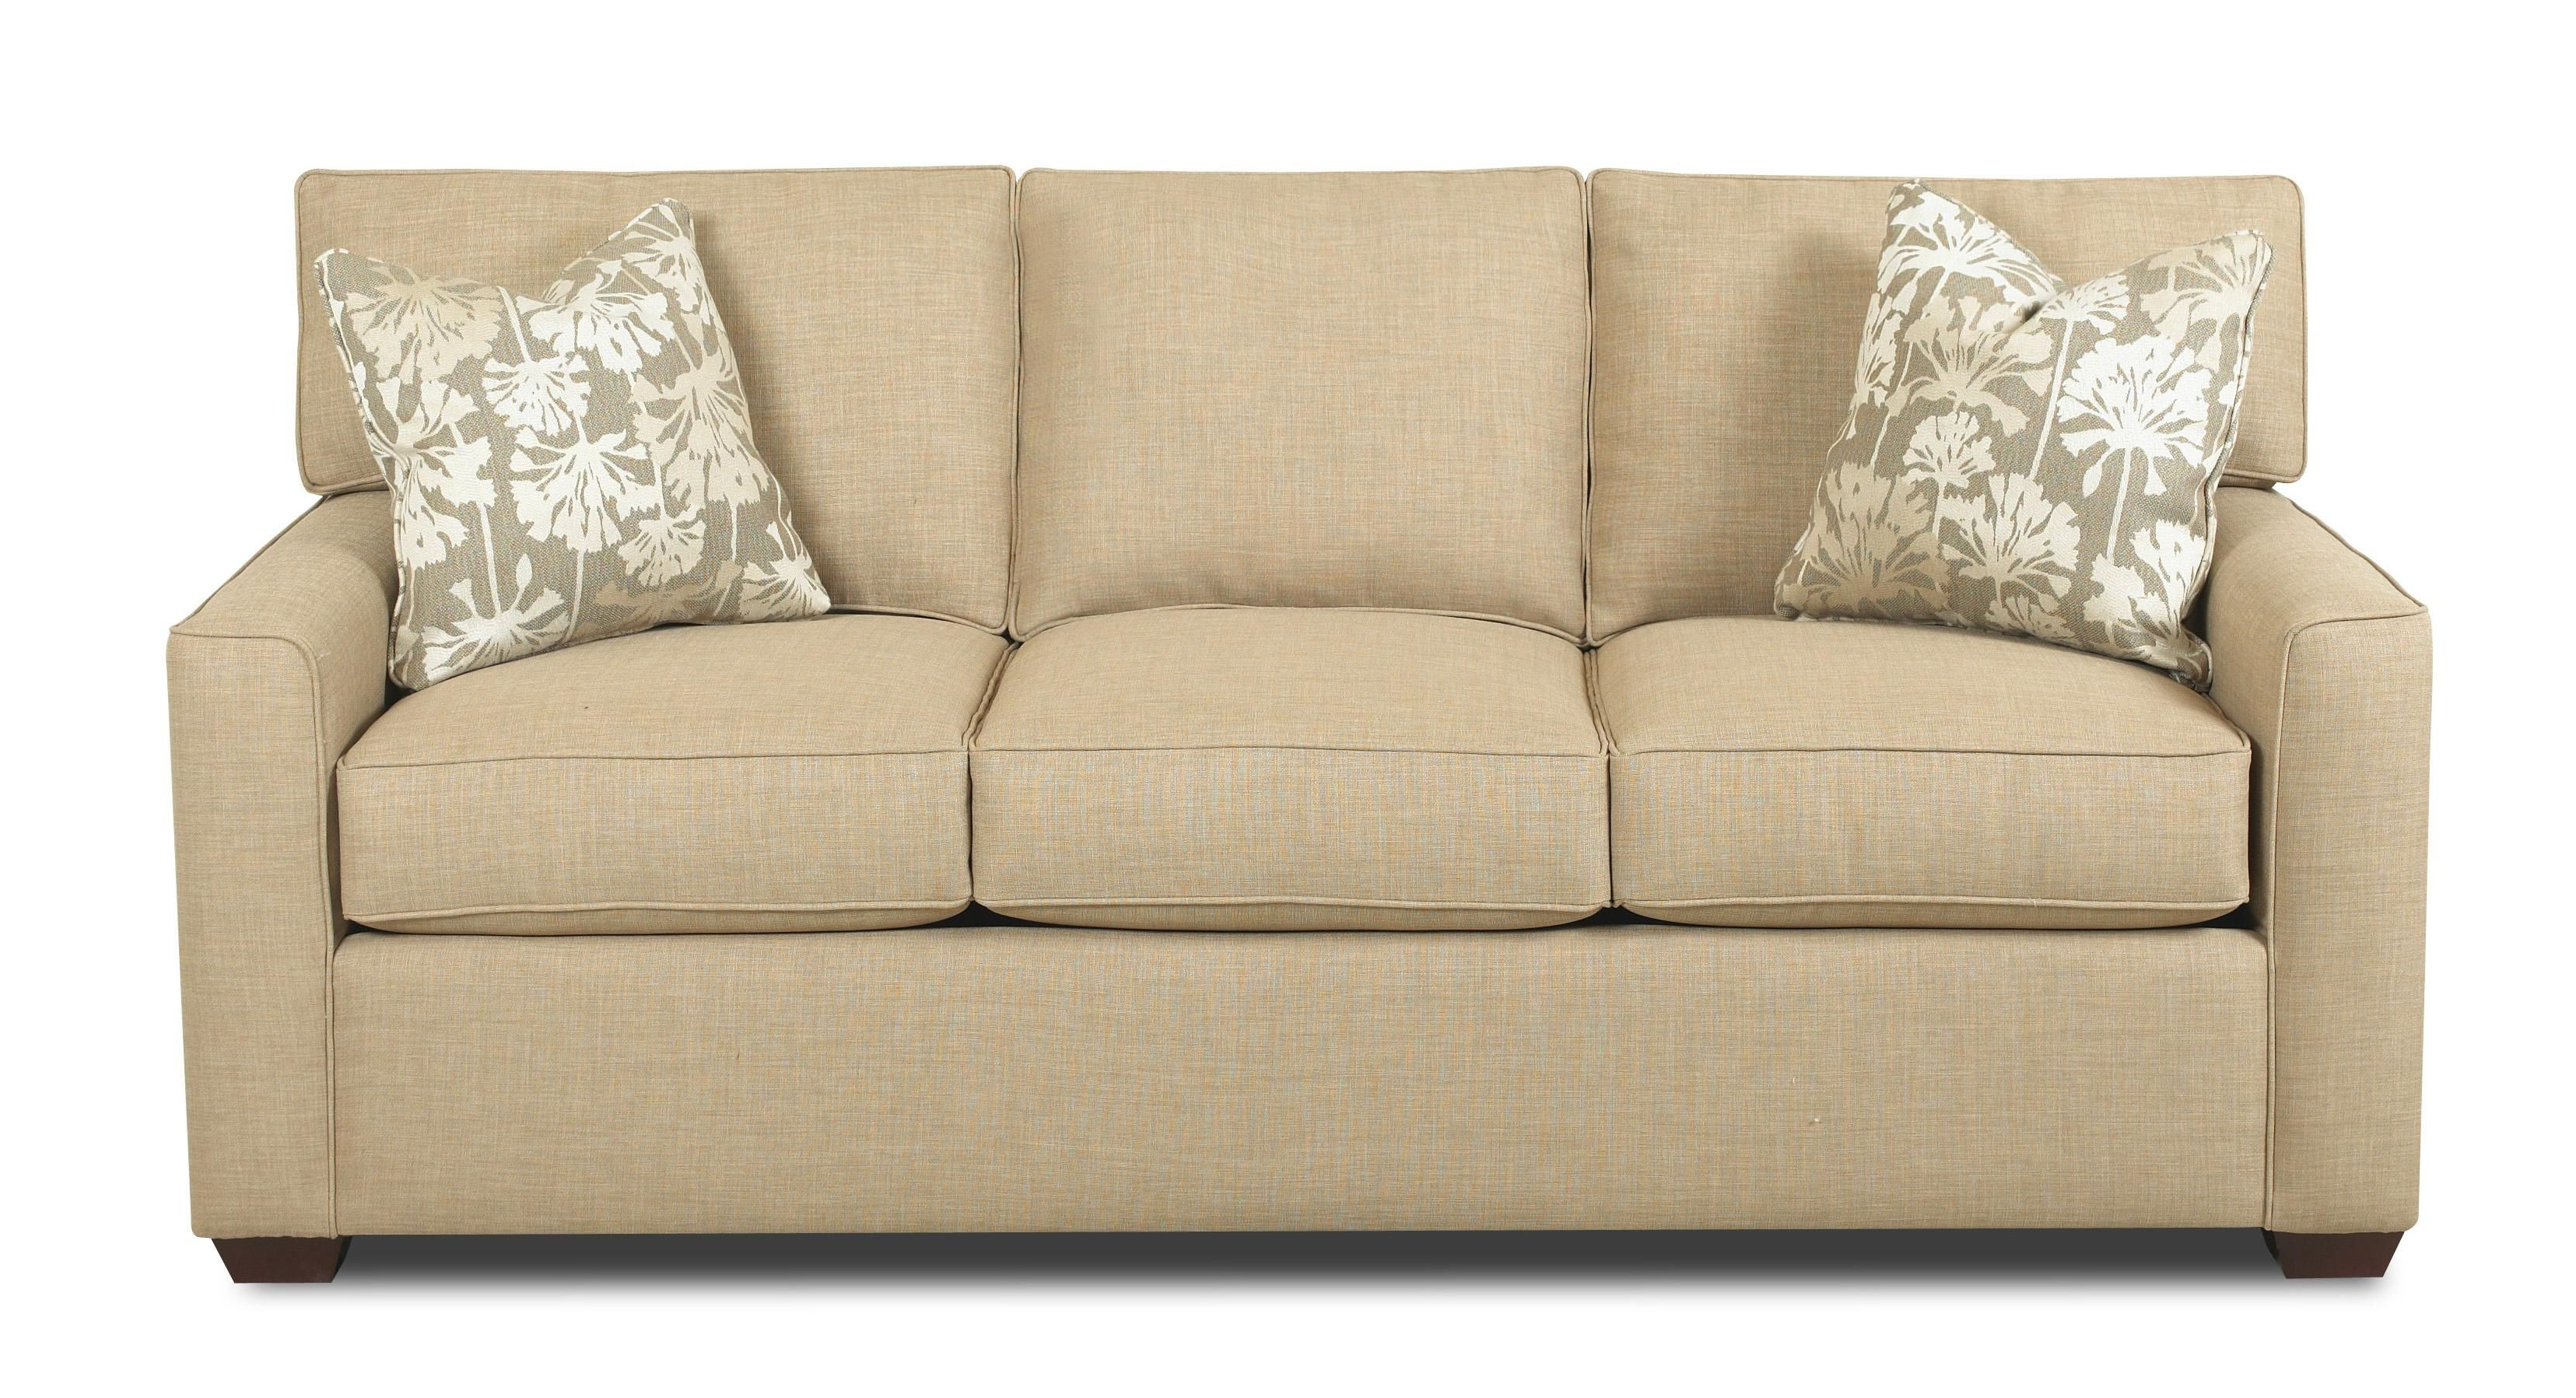 Gordon Arm Sofa Chairs With Well Liked Pantego Sofa With Track Arms – Ruby Gordon Home Furnishings – Sofa (View 7 of 20)